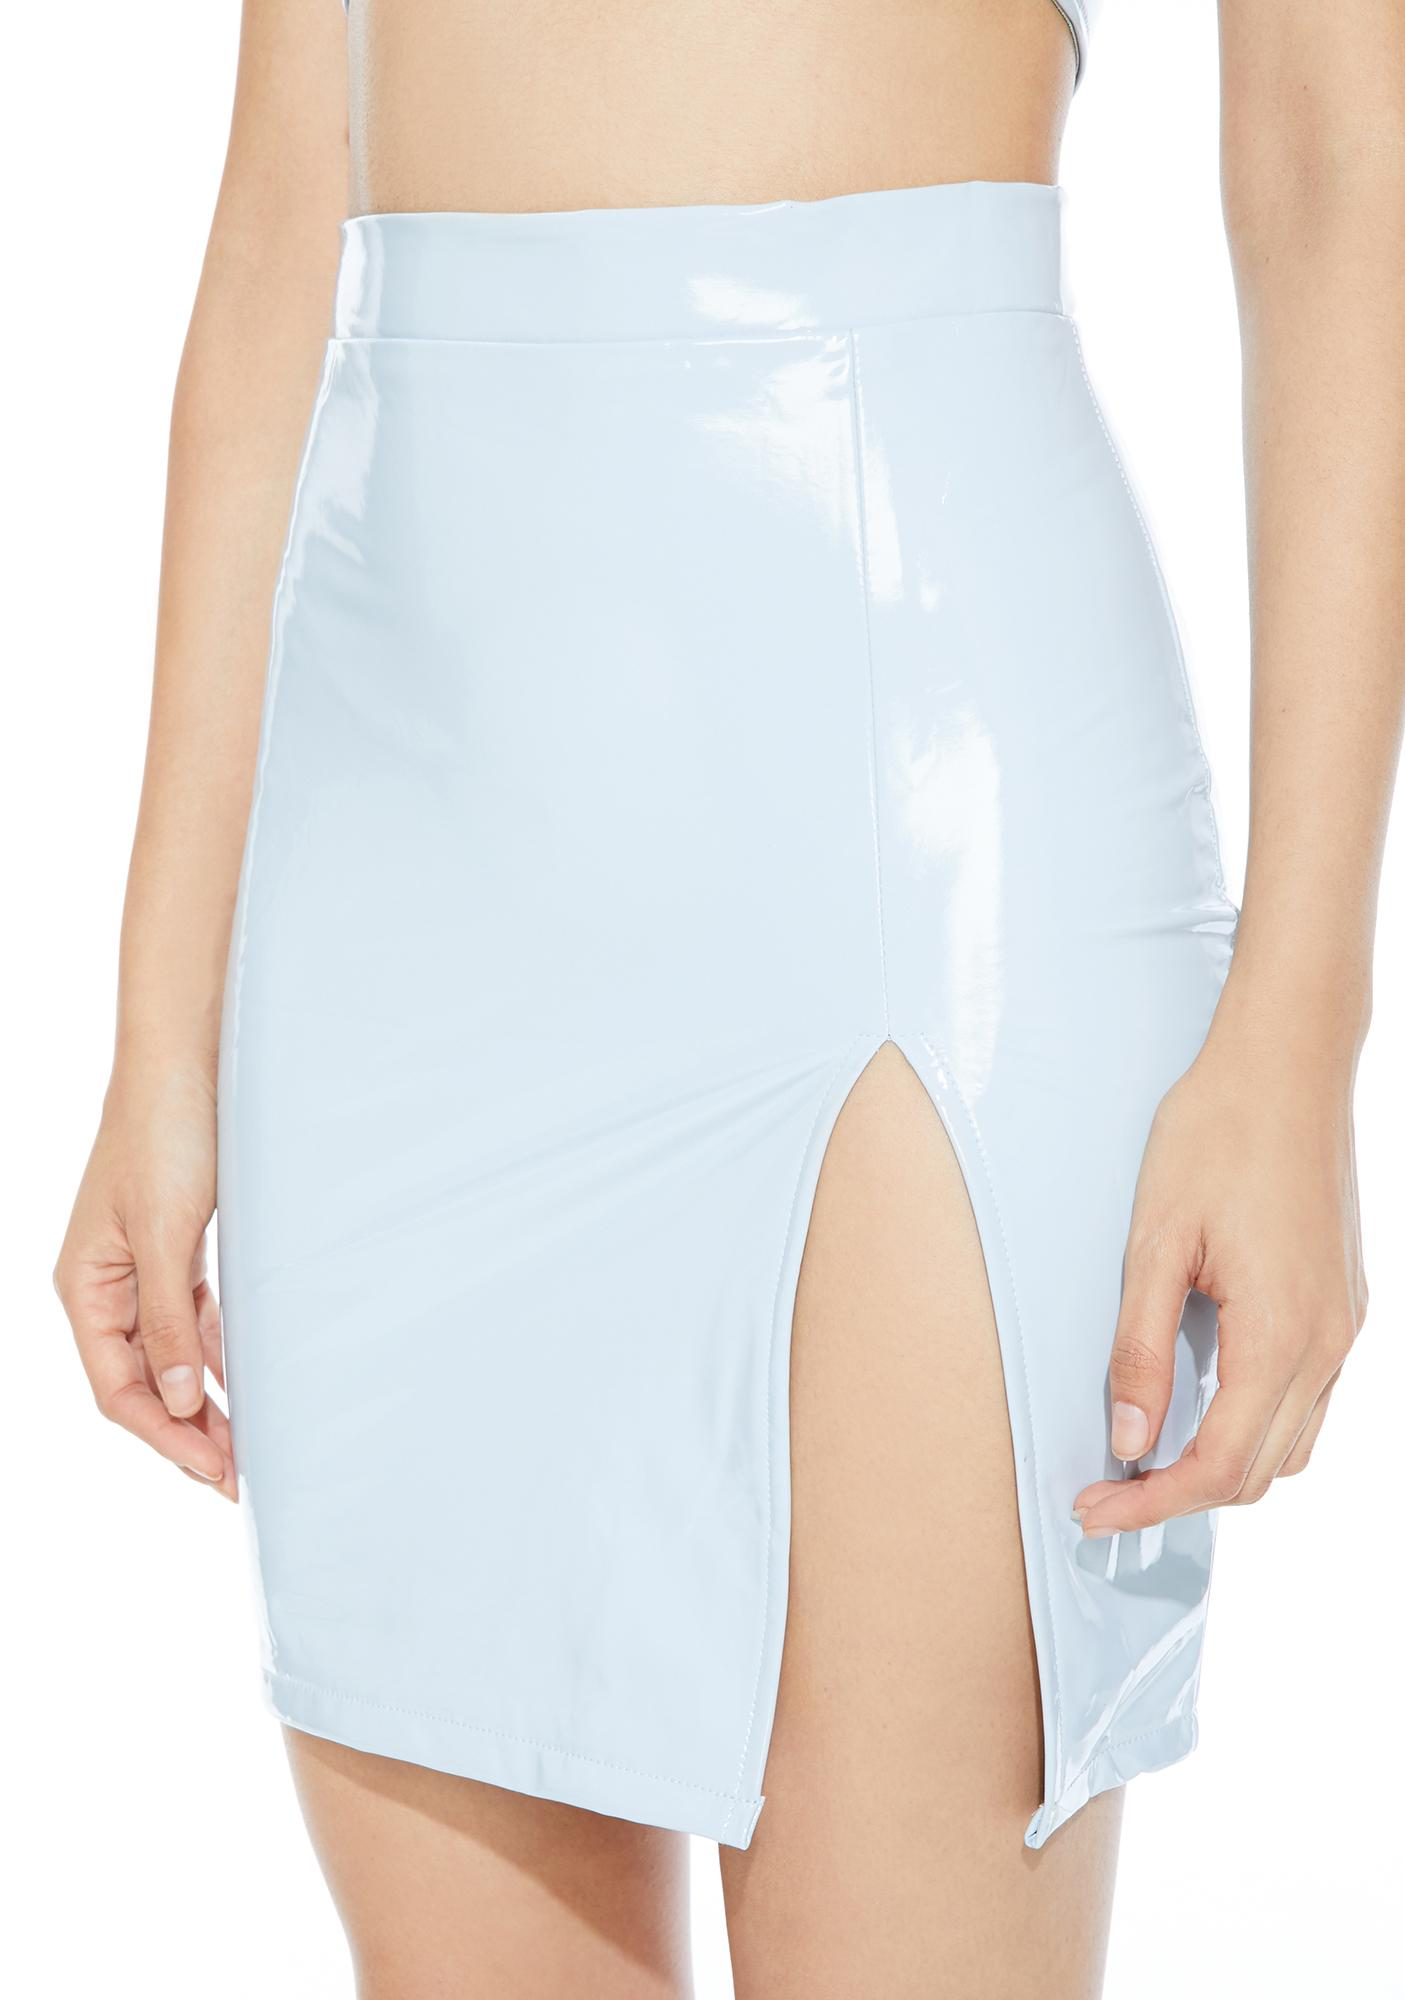 Love Hotel Vinyl Mini Skirt